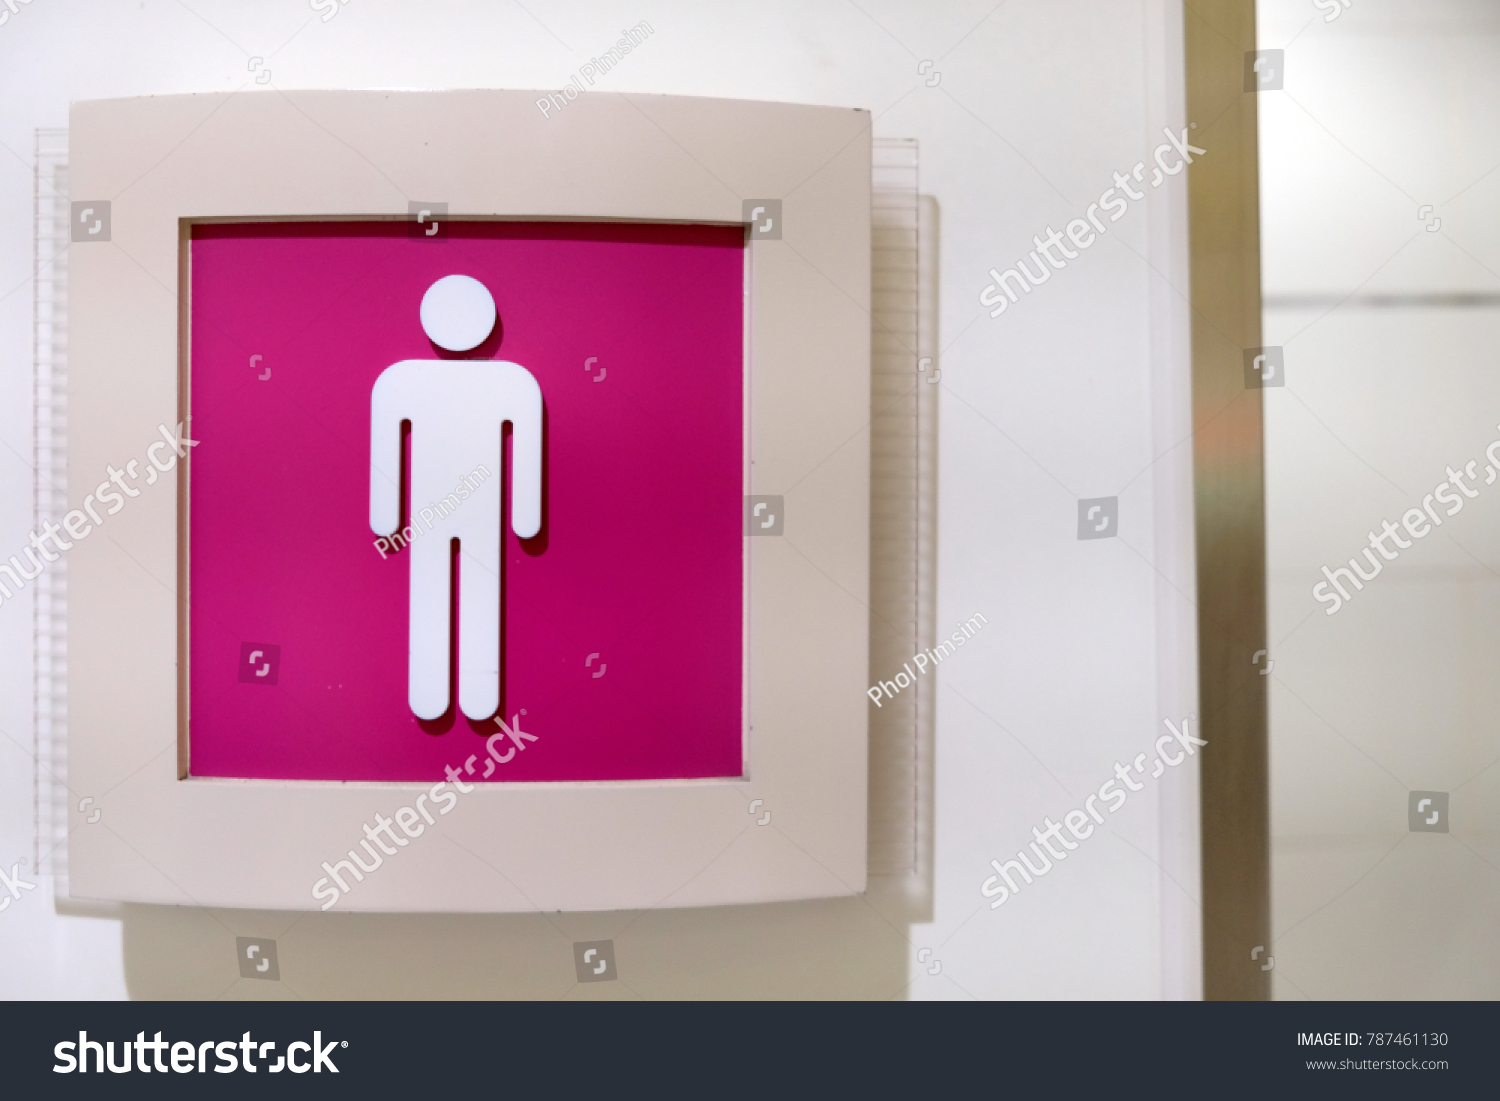 male sign logo in front of toilet | EZ Canvas